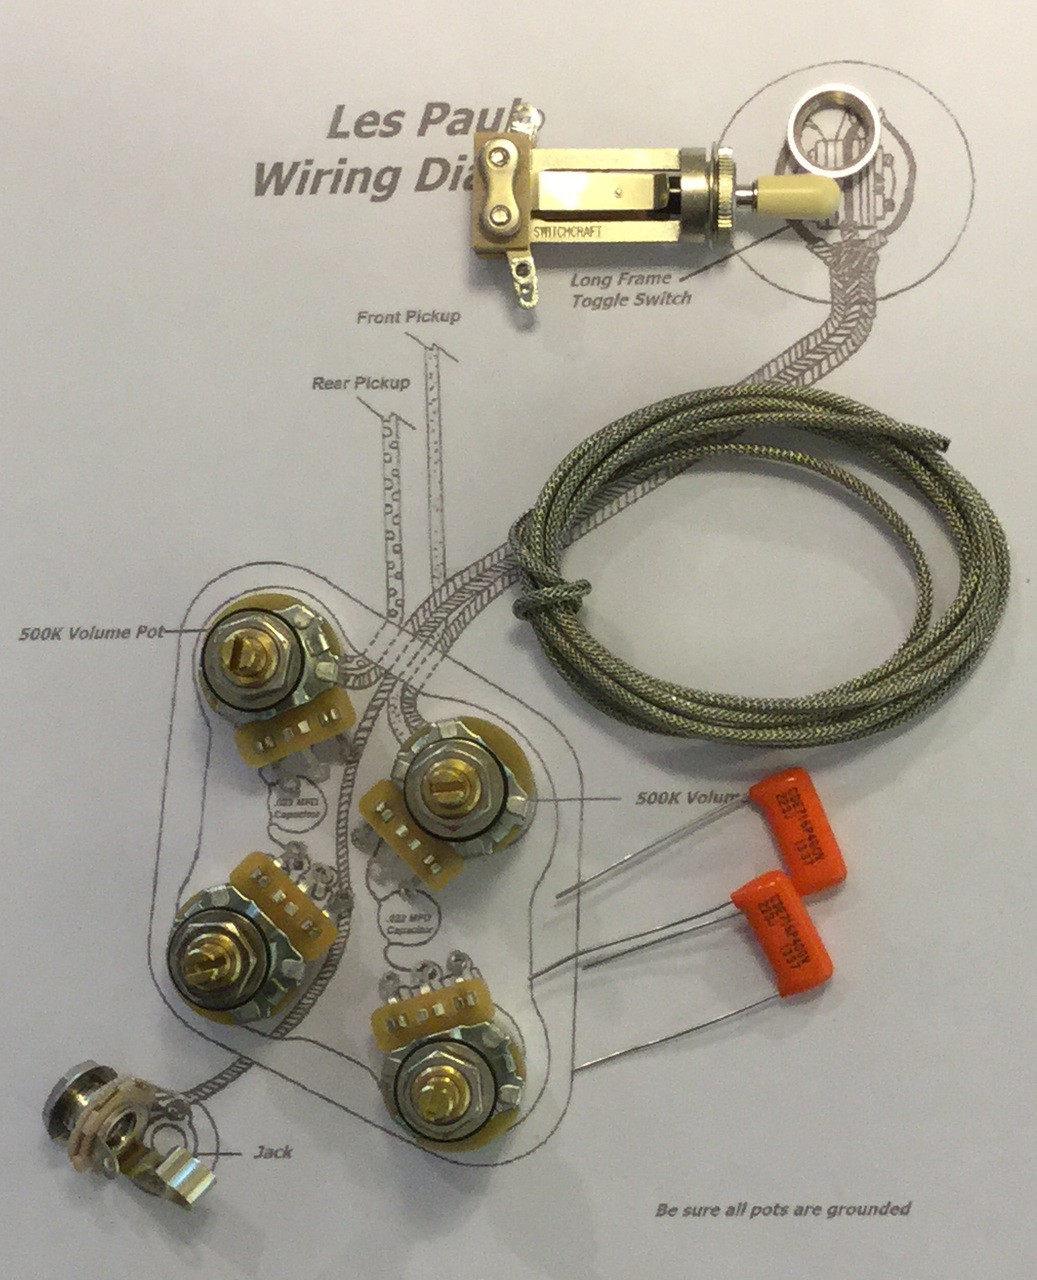 ... TAOT Wiring Kit - Gibson Les Paul - Long Shaft - CTS 450G 525K Pots ...